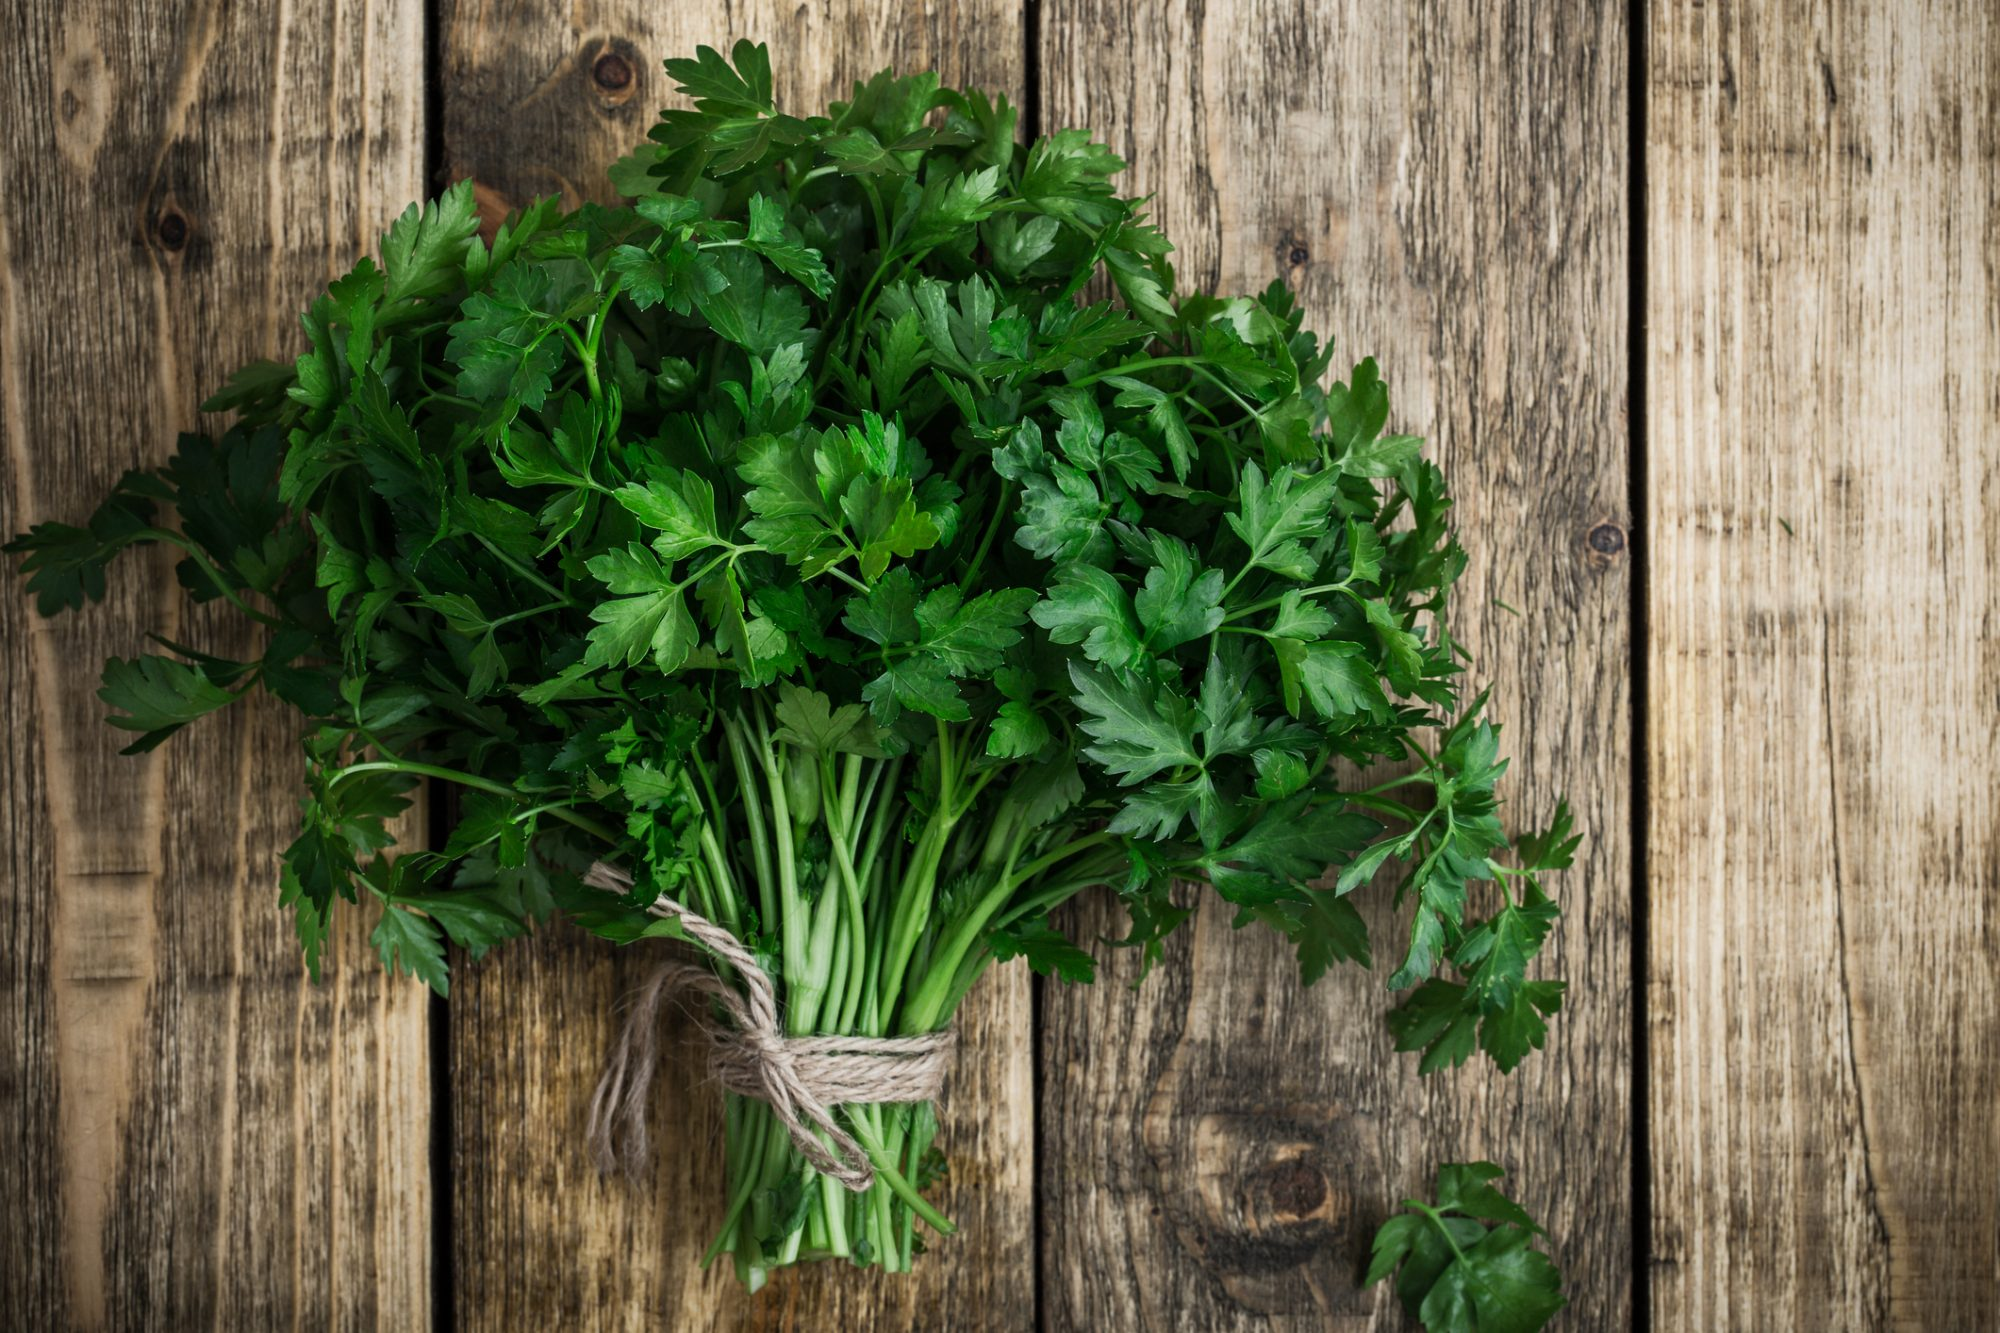 Fresh organic parsley over wooden background viewed from above